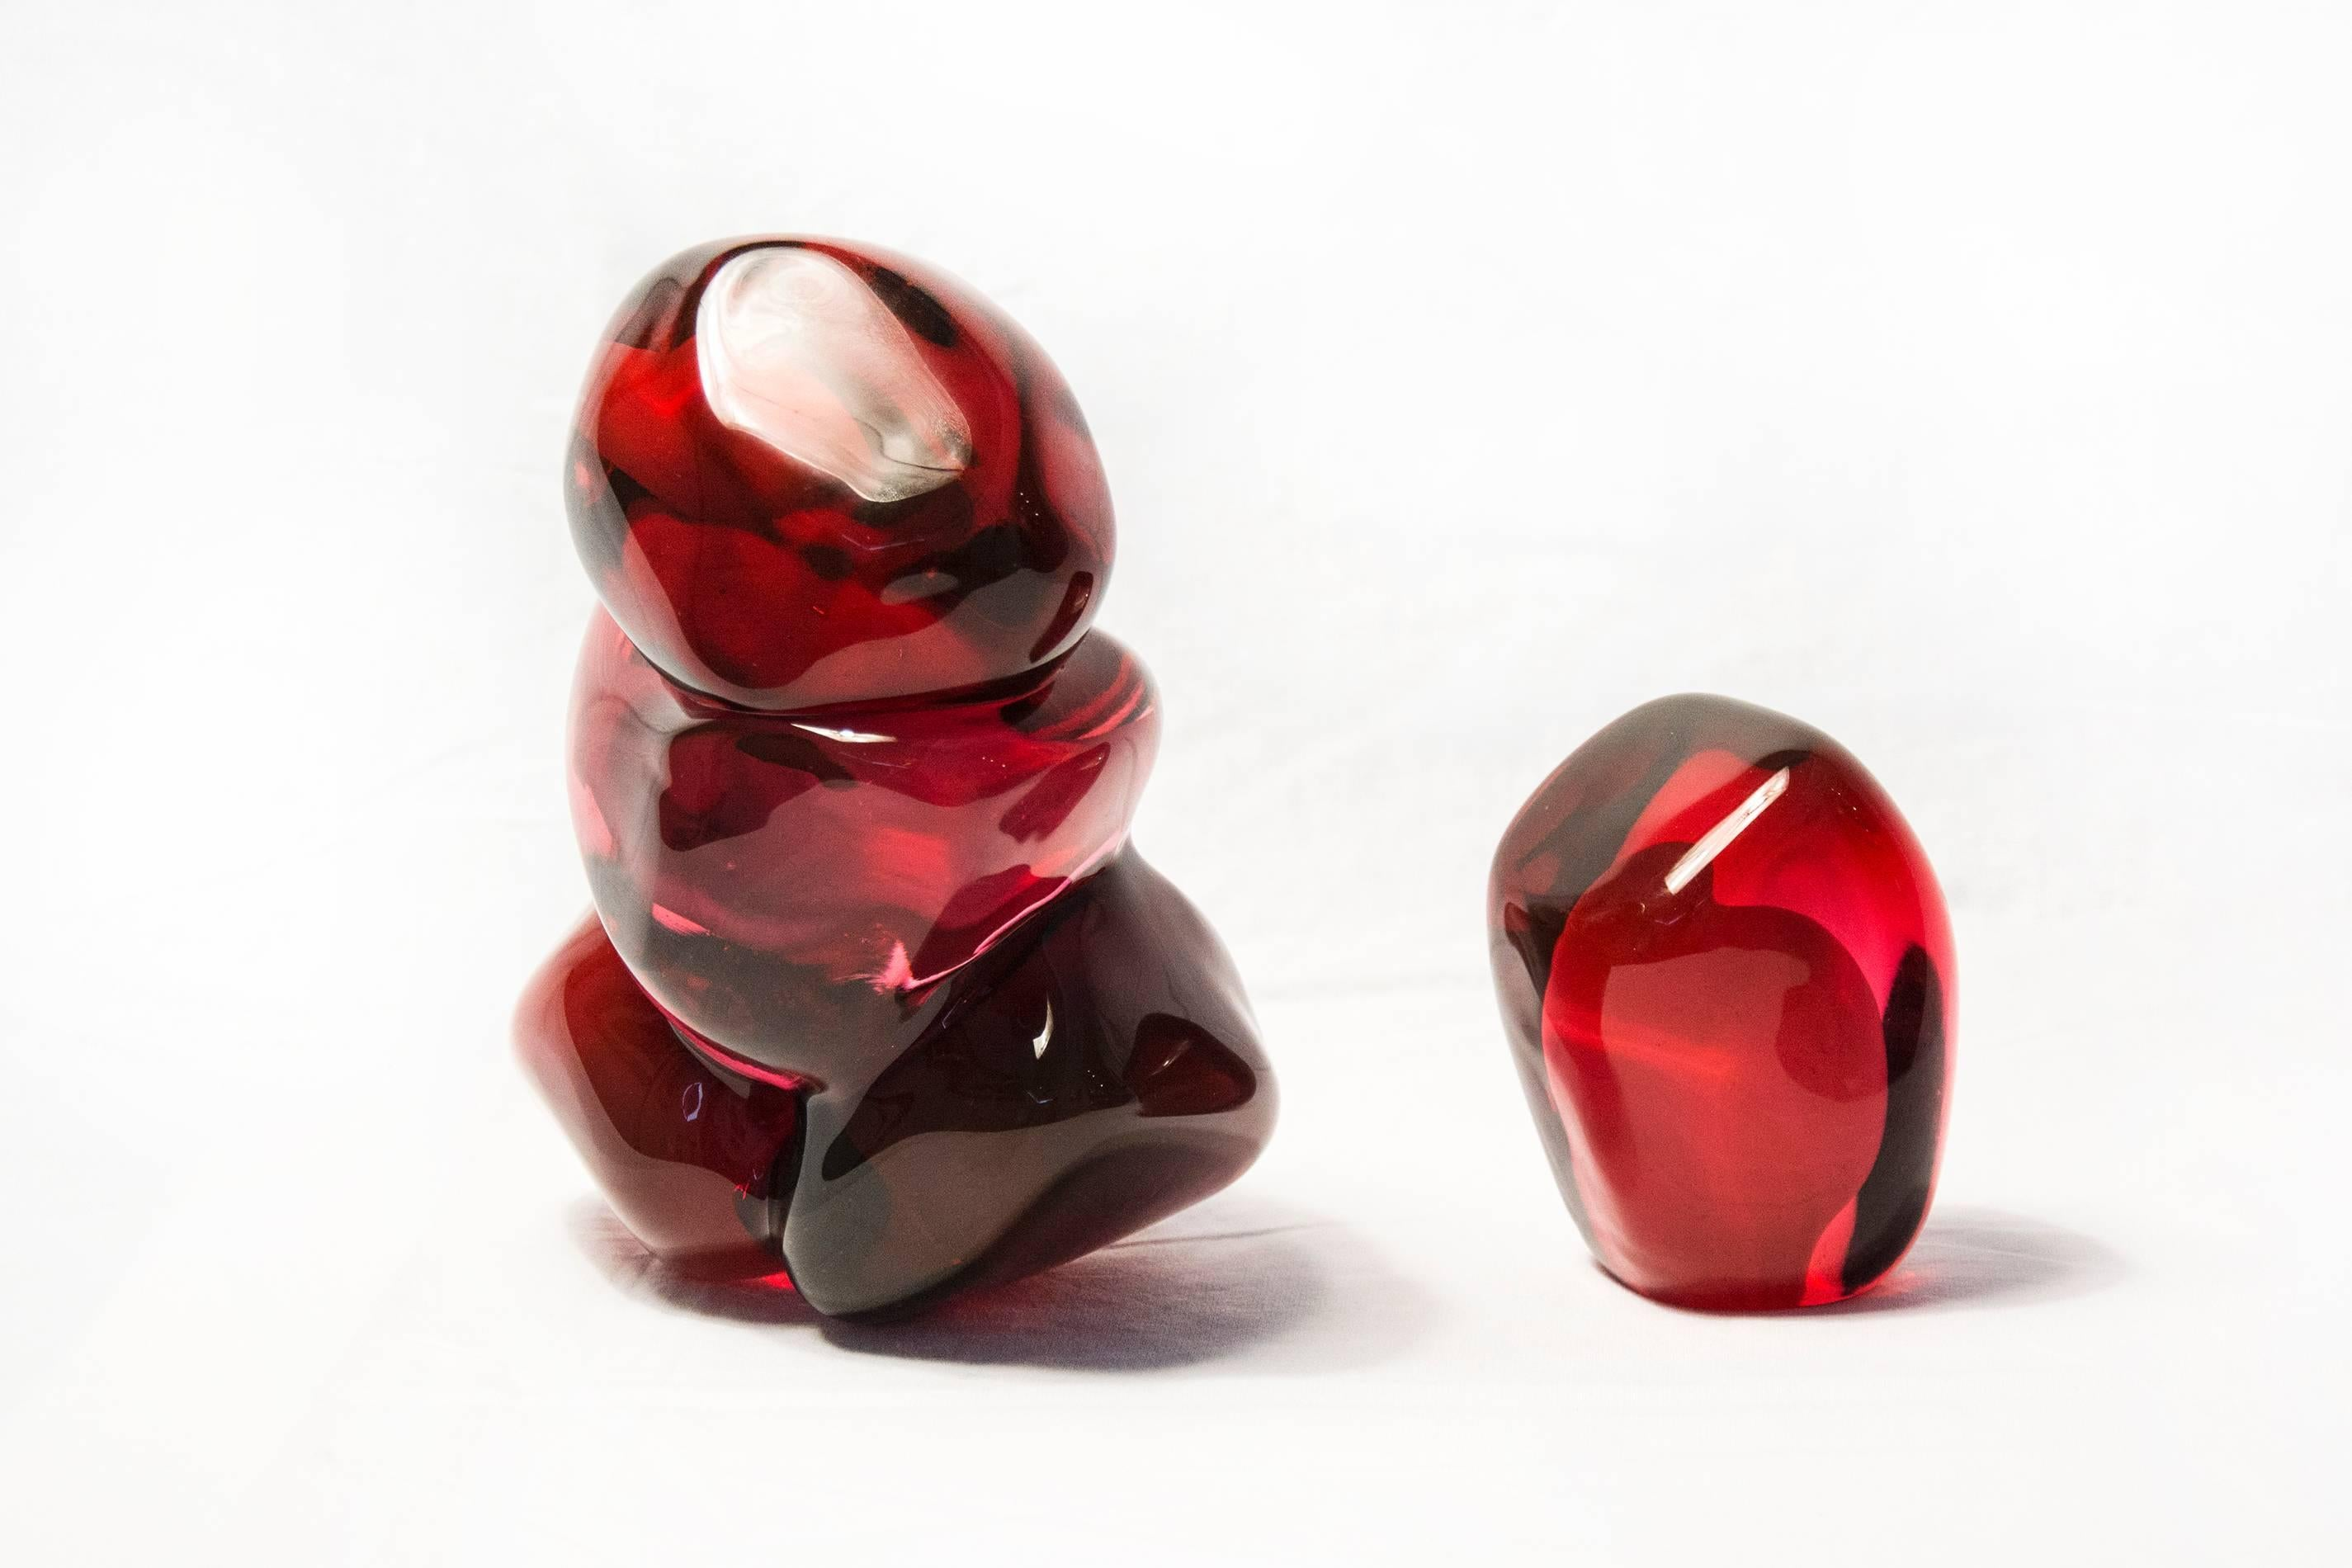 Four Pomegranate Seeds Plus One - small, bright, red, glass still life sculpture